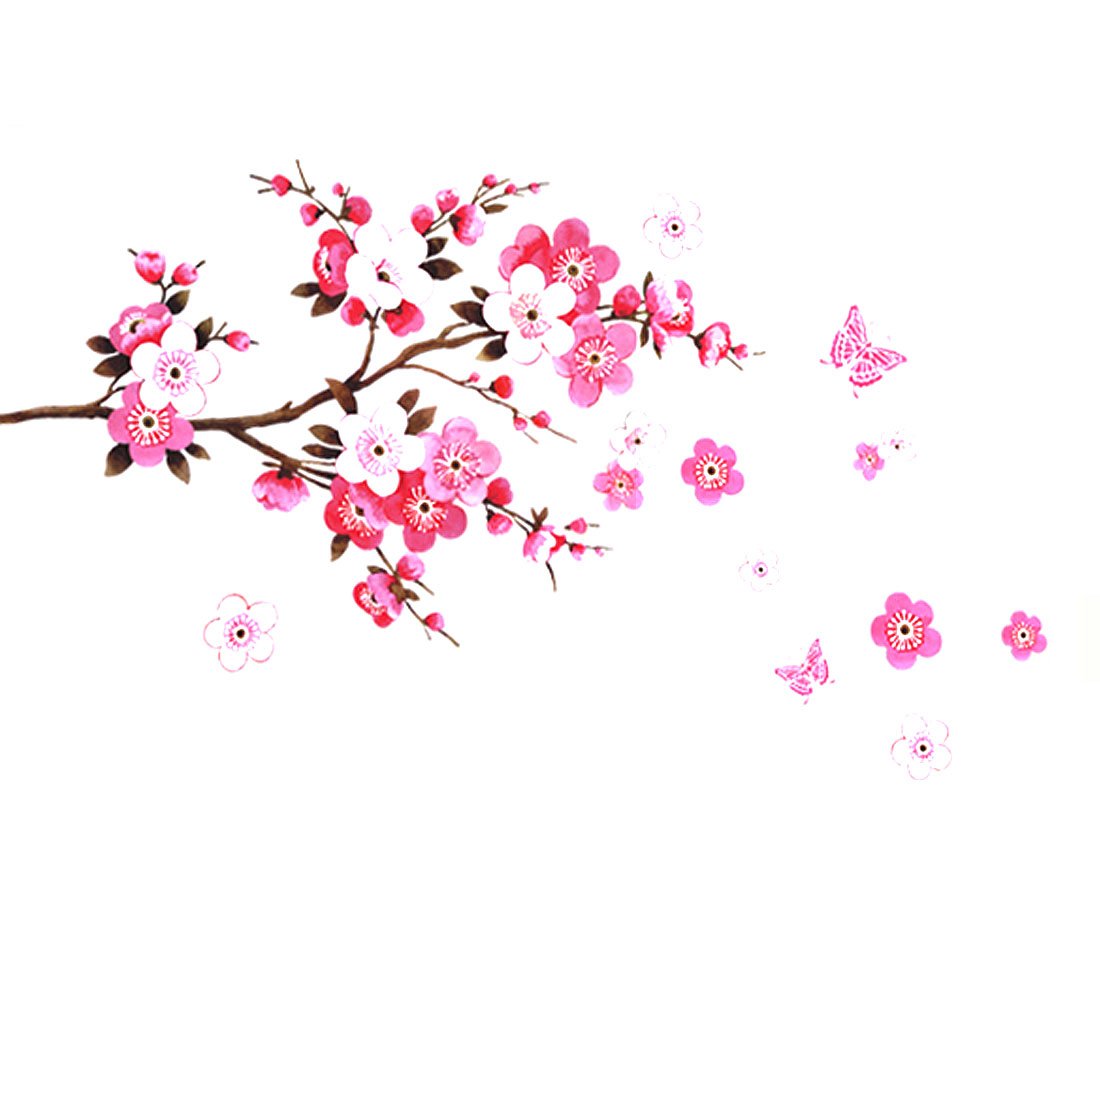 Room Peach Blossom Flower Butterfly Pattern Wall Sticker Decal Decor